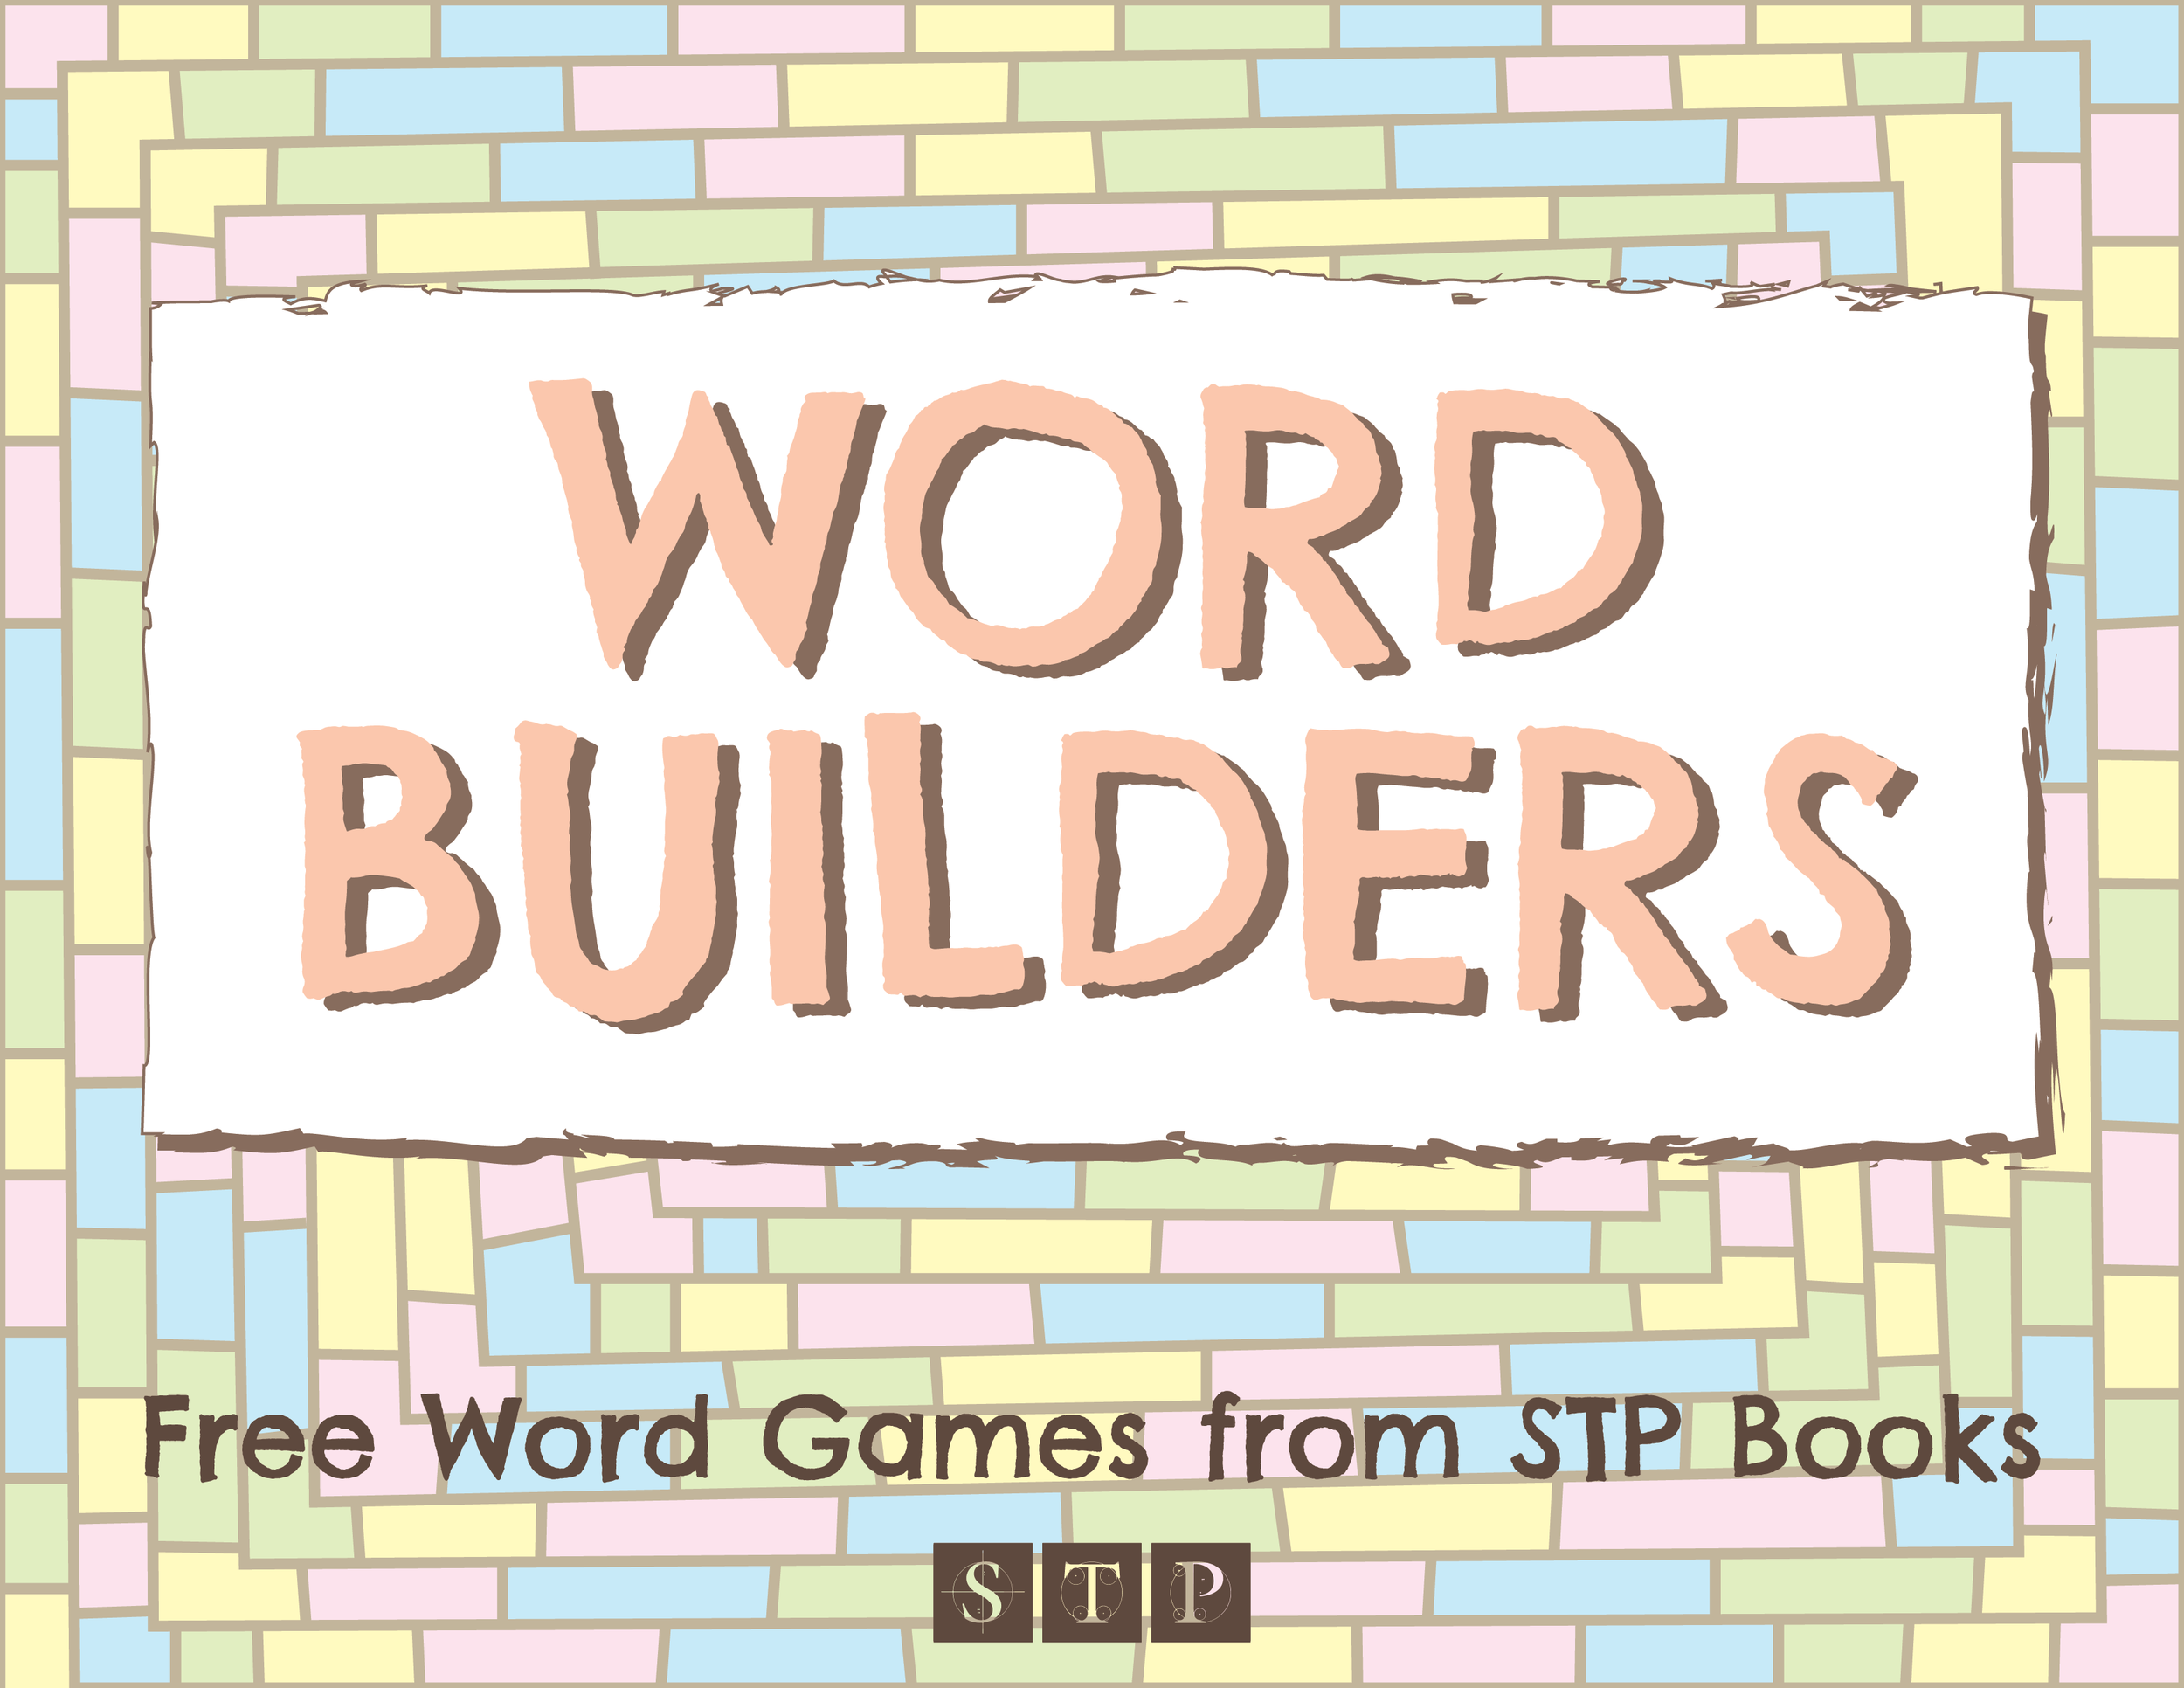 - Make as many words as possible from the letters of the given word - are you a master word builder?